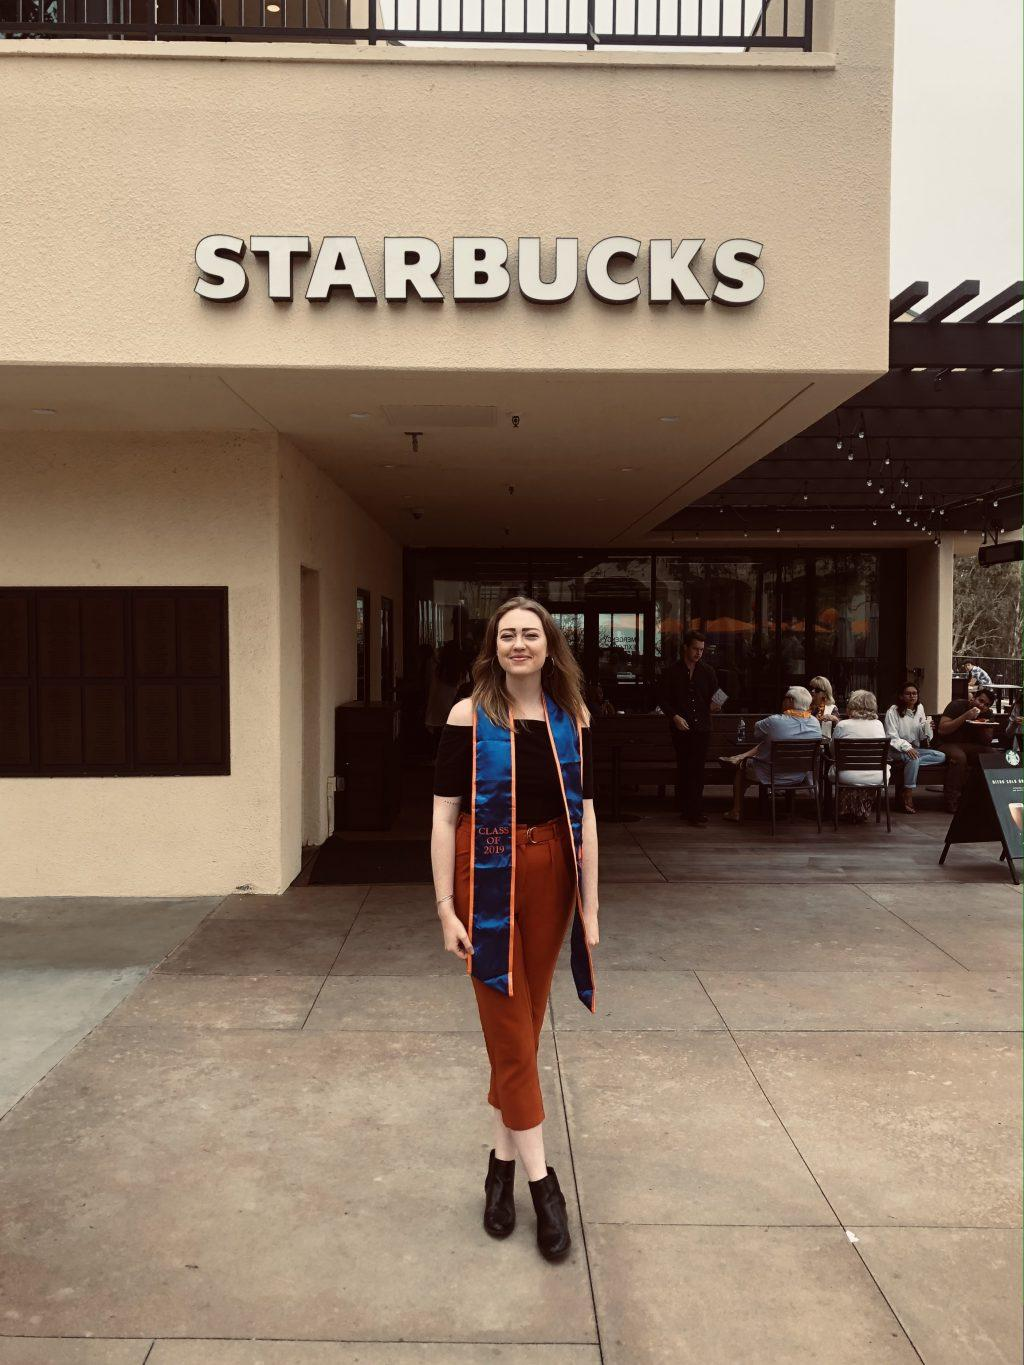 Donlon smiles outside of the Malibu campus Starbucks at the end of her final semester at Pepperdine in spring 2019. Donlon said she thinks it is funny that so much of her life involves coffee, between her work with Coffee Monday and her job as a Starbucks barista.